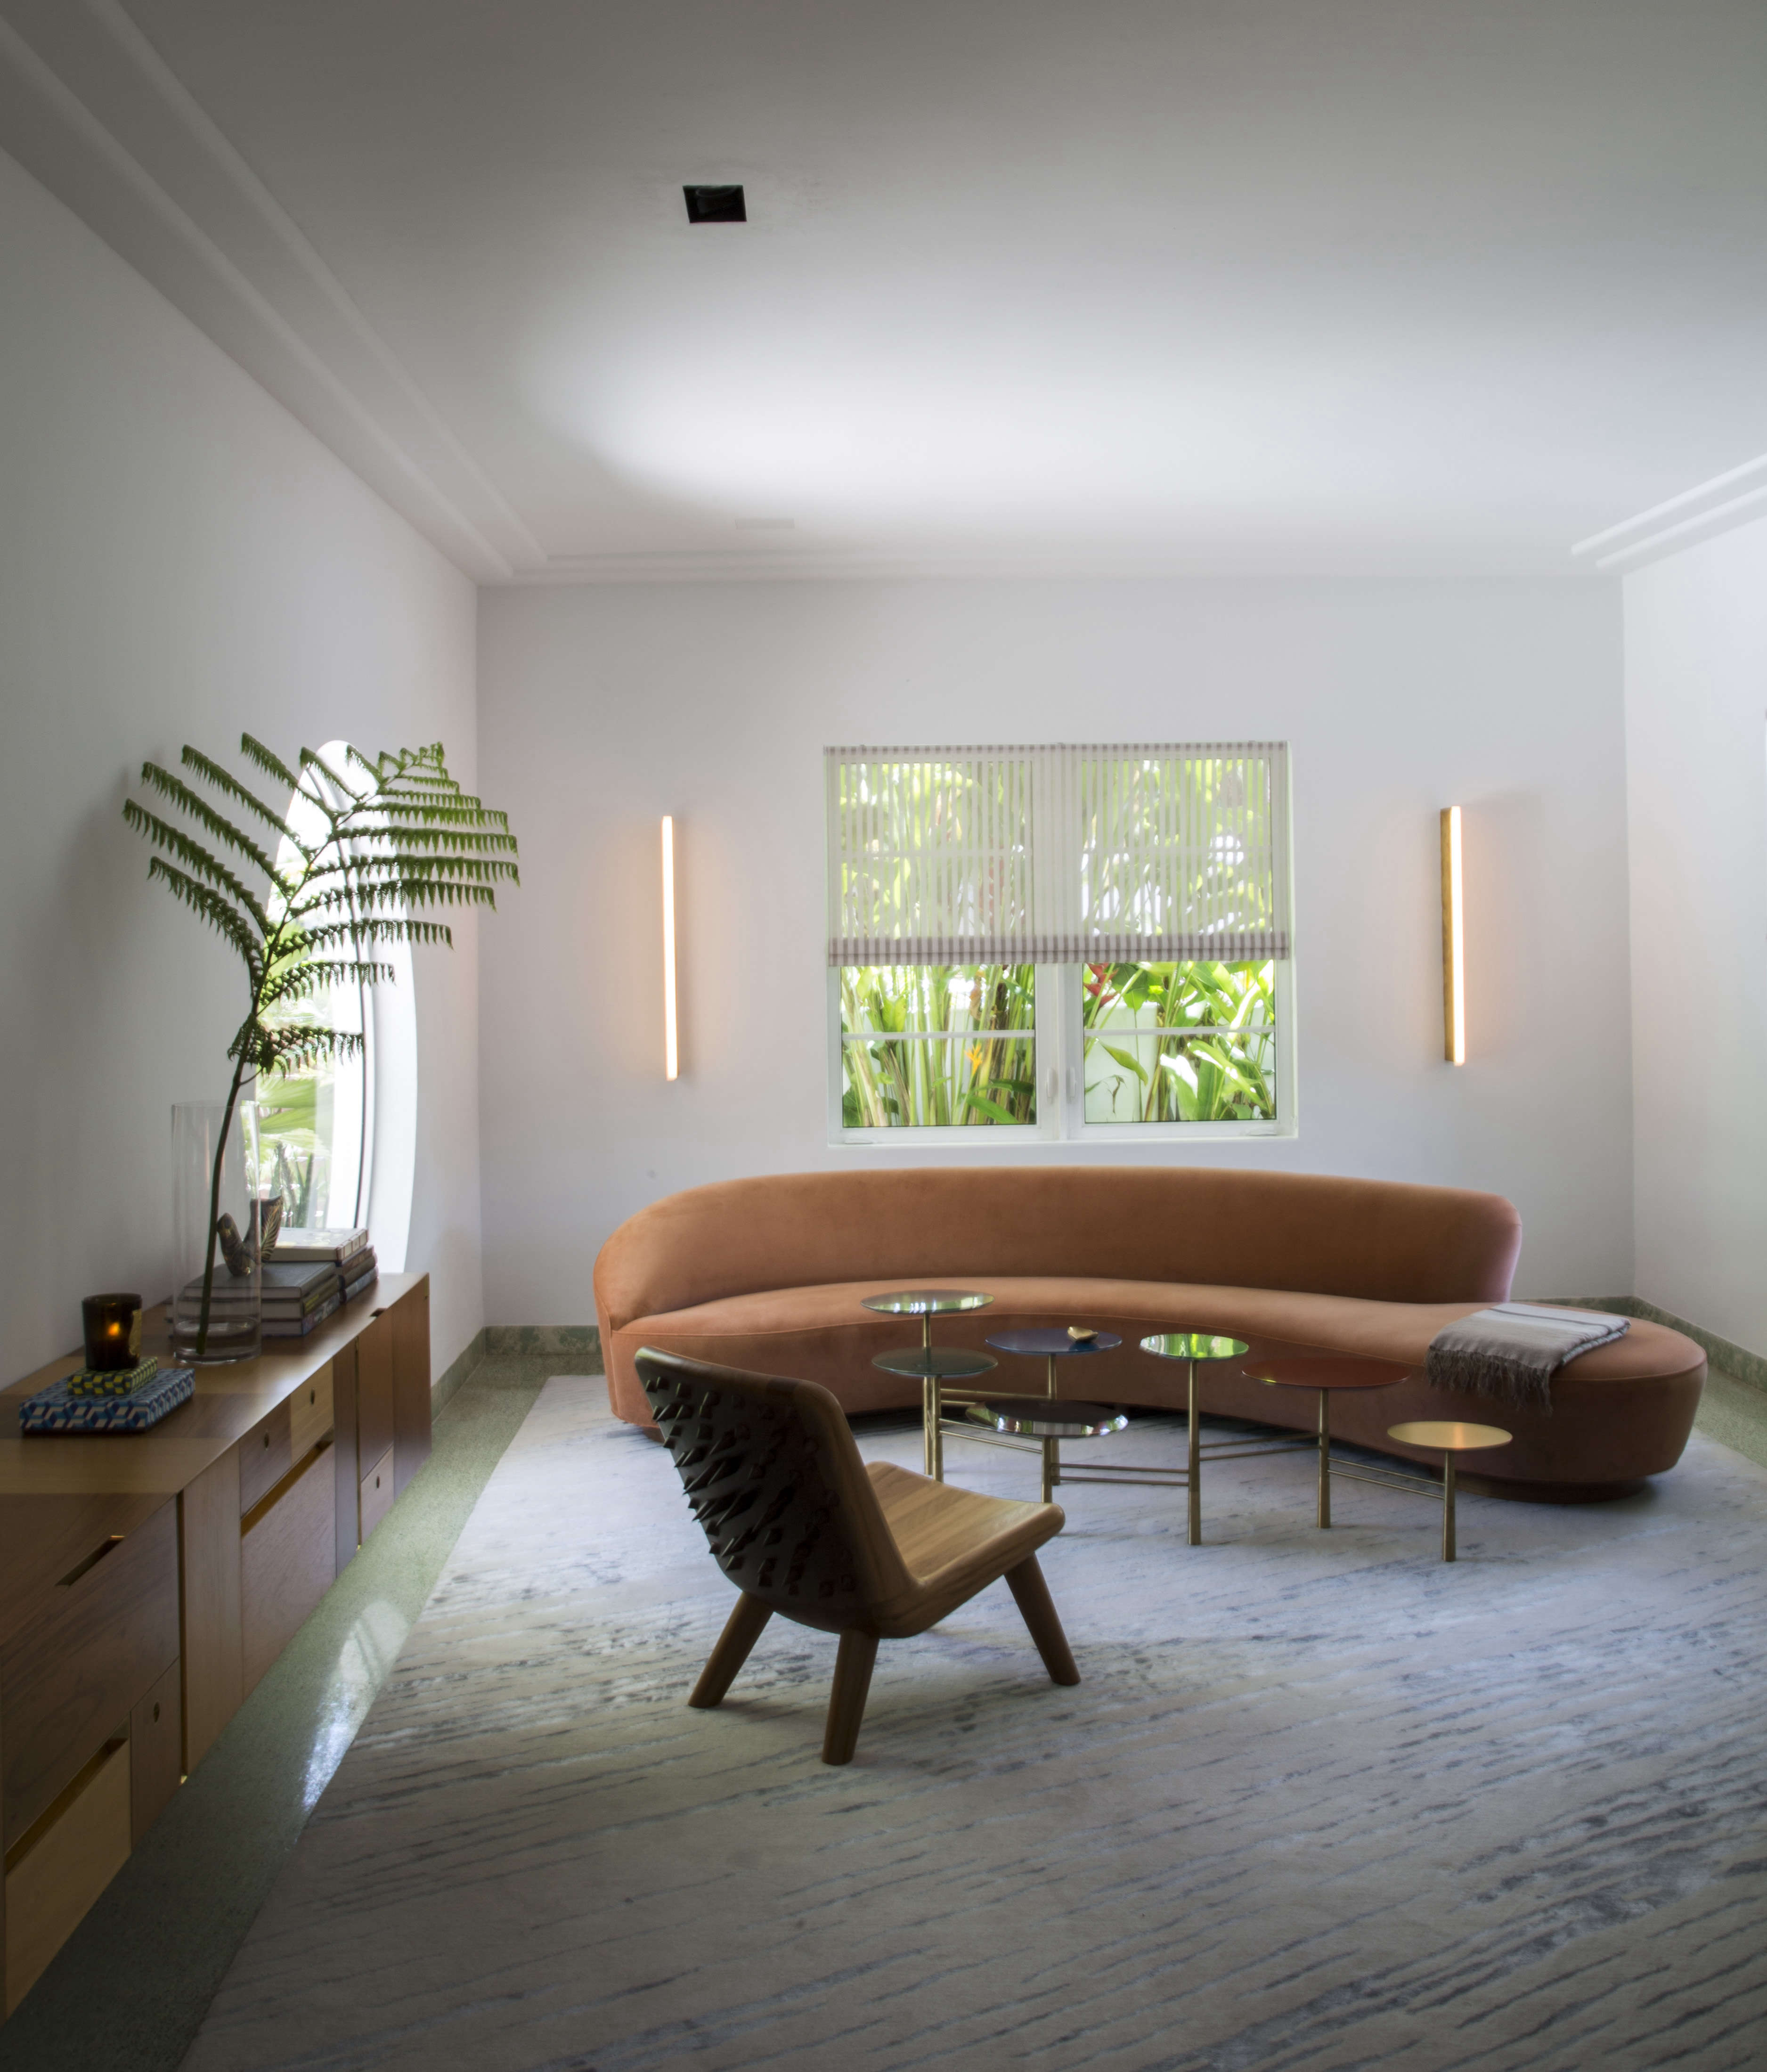 Modern in Miami At Home with a Worldly Contemporary Furniture Dealer Living room with Vladimir Kagan sofa in Miami art deco villa remodel by Stephan Weishaupt, owner of Avenue Road, Max Zambelli photo | Remodelista